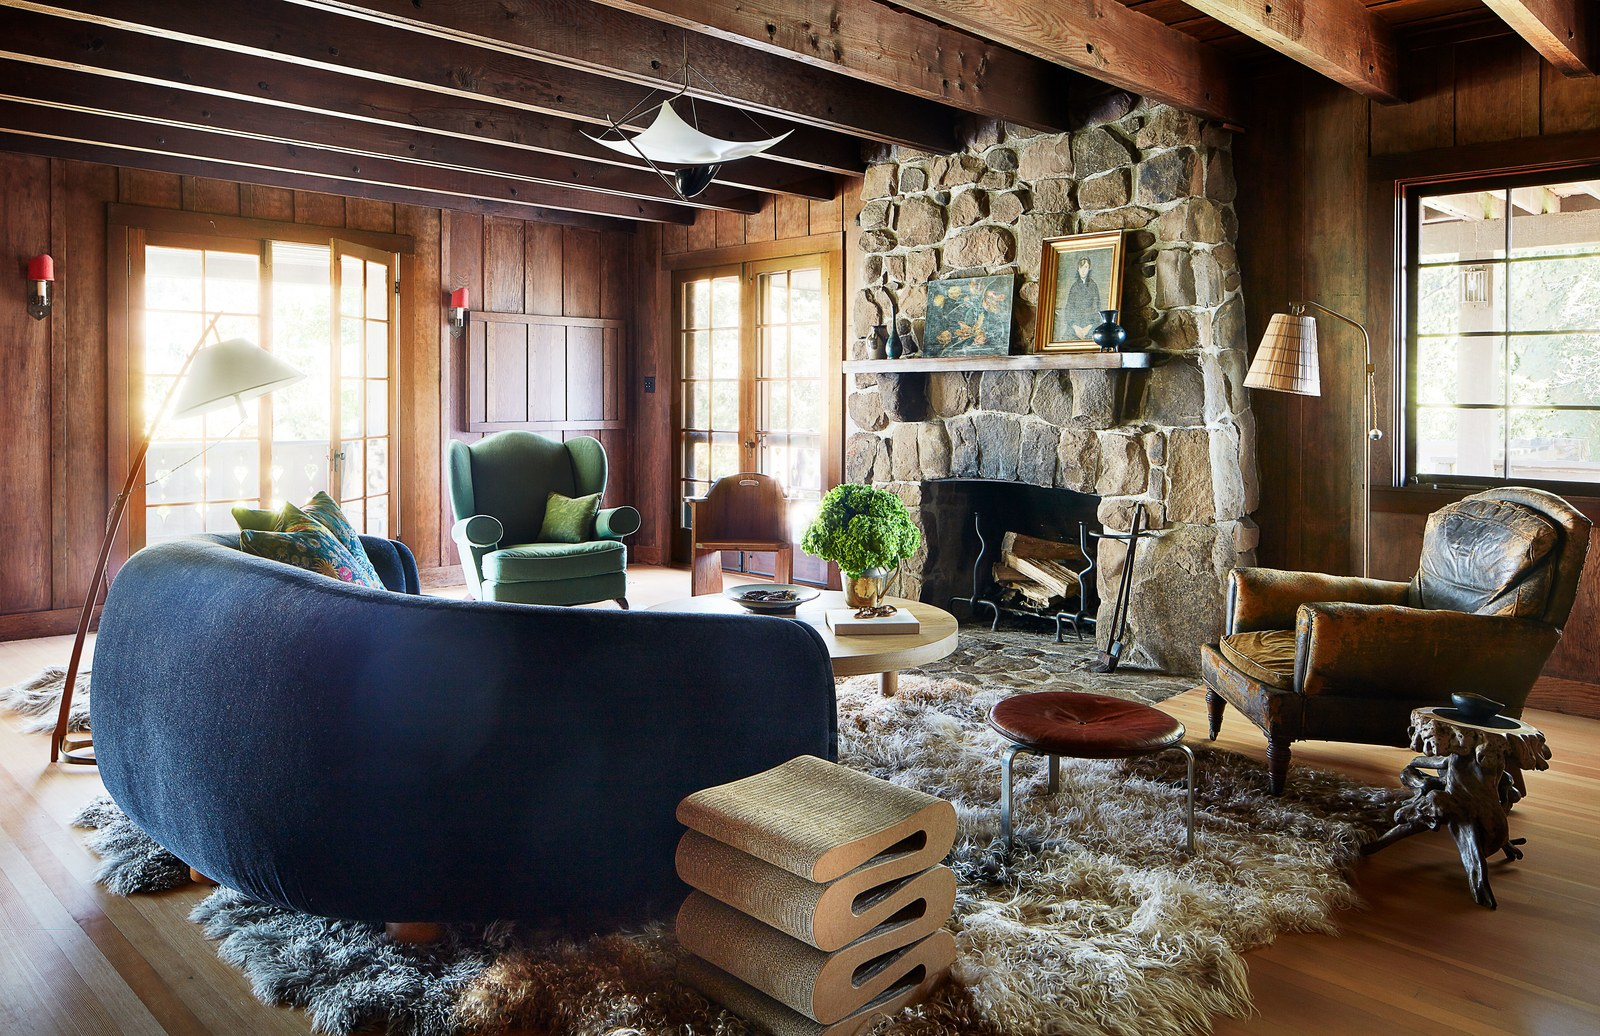 The Nordroom - Anne Hathaway's Comfortable California Coutry Home